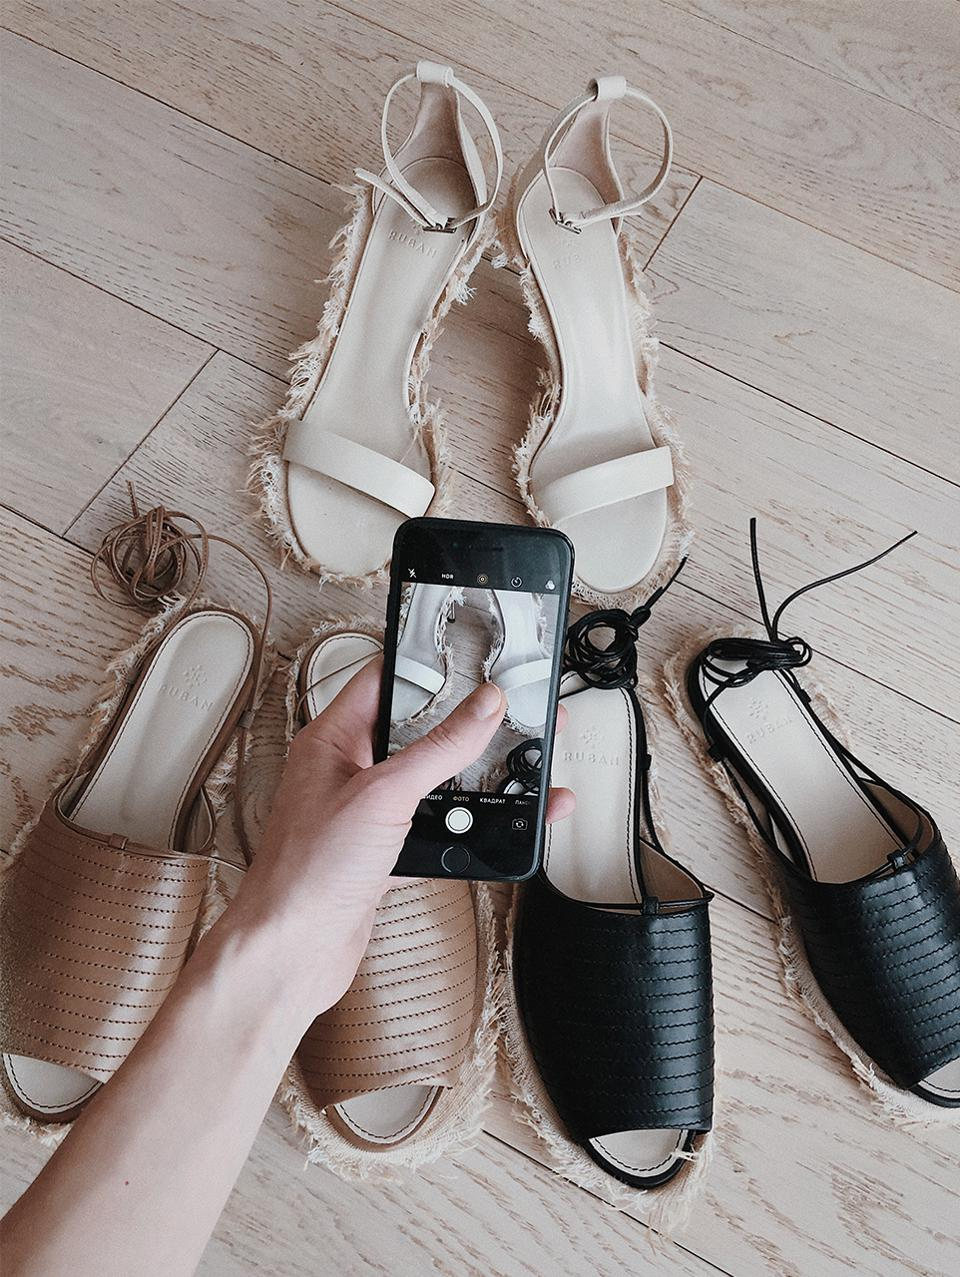 Footwear from the Ruban's Cruise 2020 collection